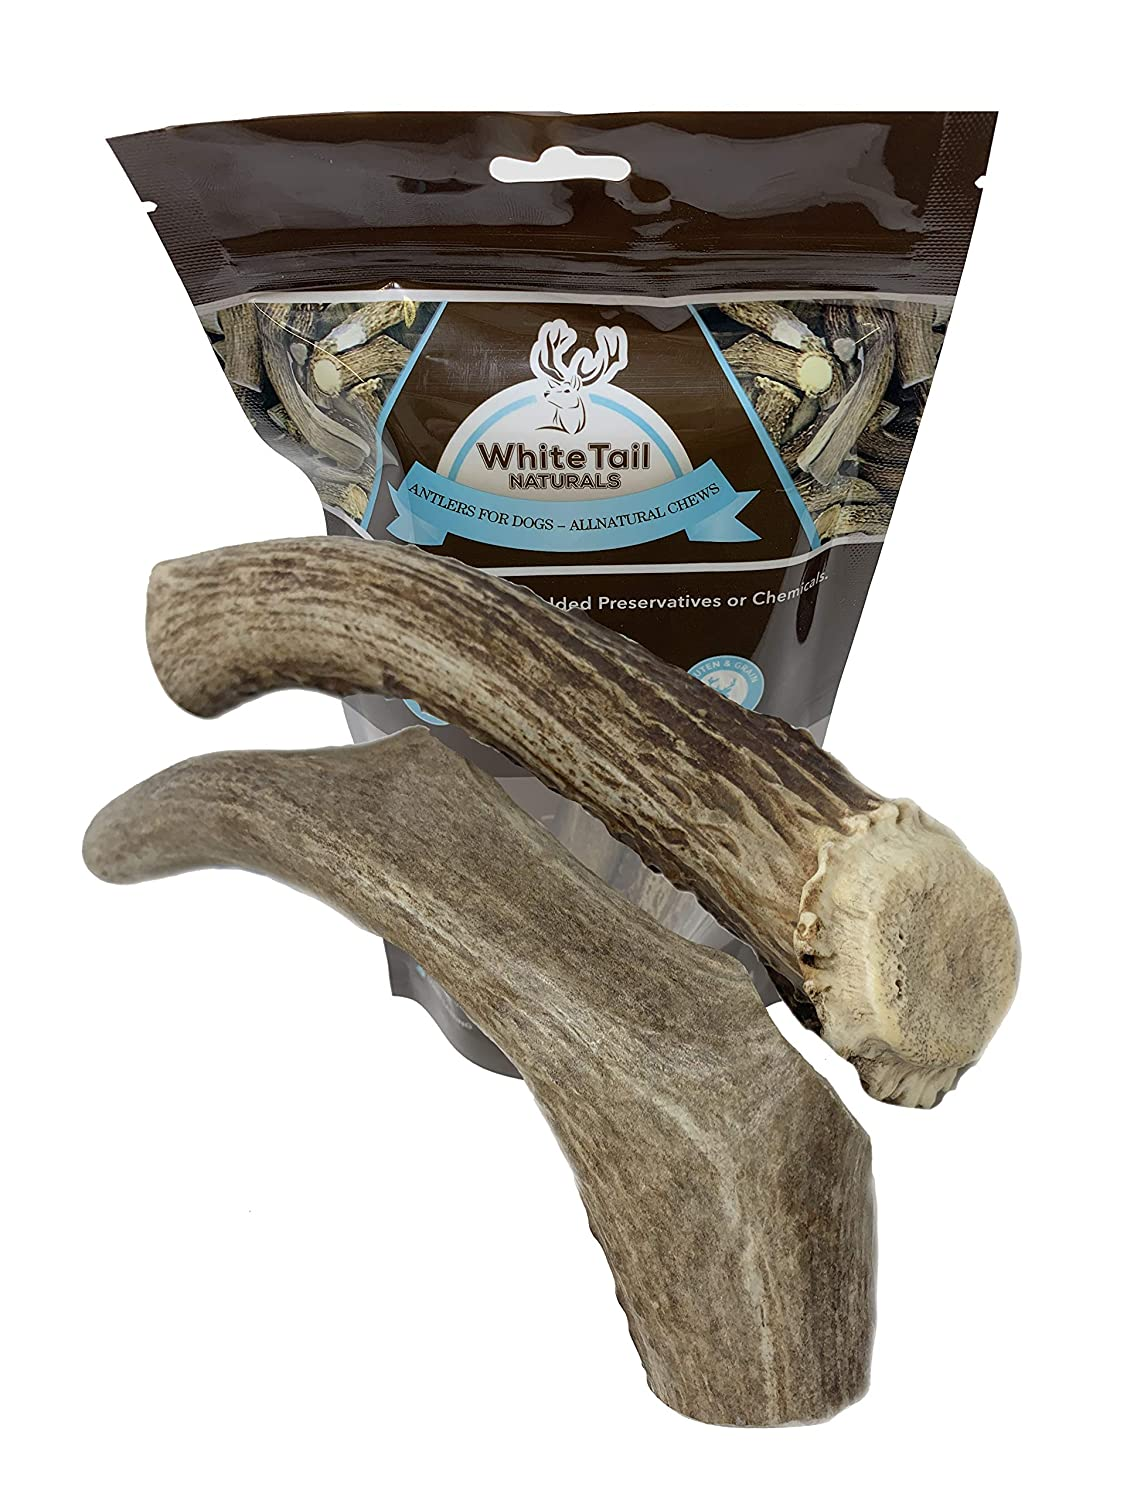 WhiteTail Naturals 2 Pack Large Deer Antlers for Dogs, All Natural Dog Chews Grade A Antler Chew Bones Made in The USA